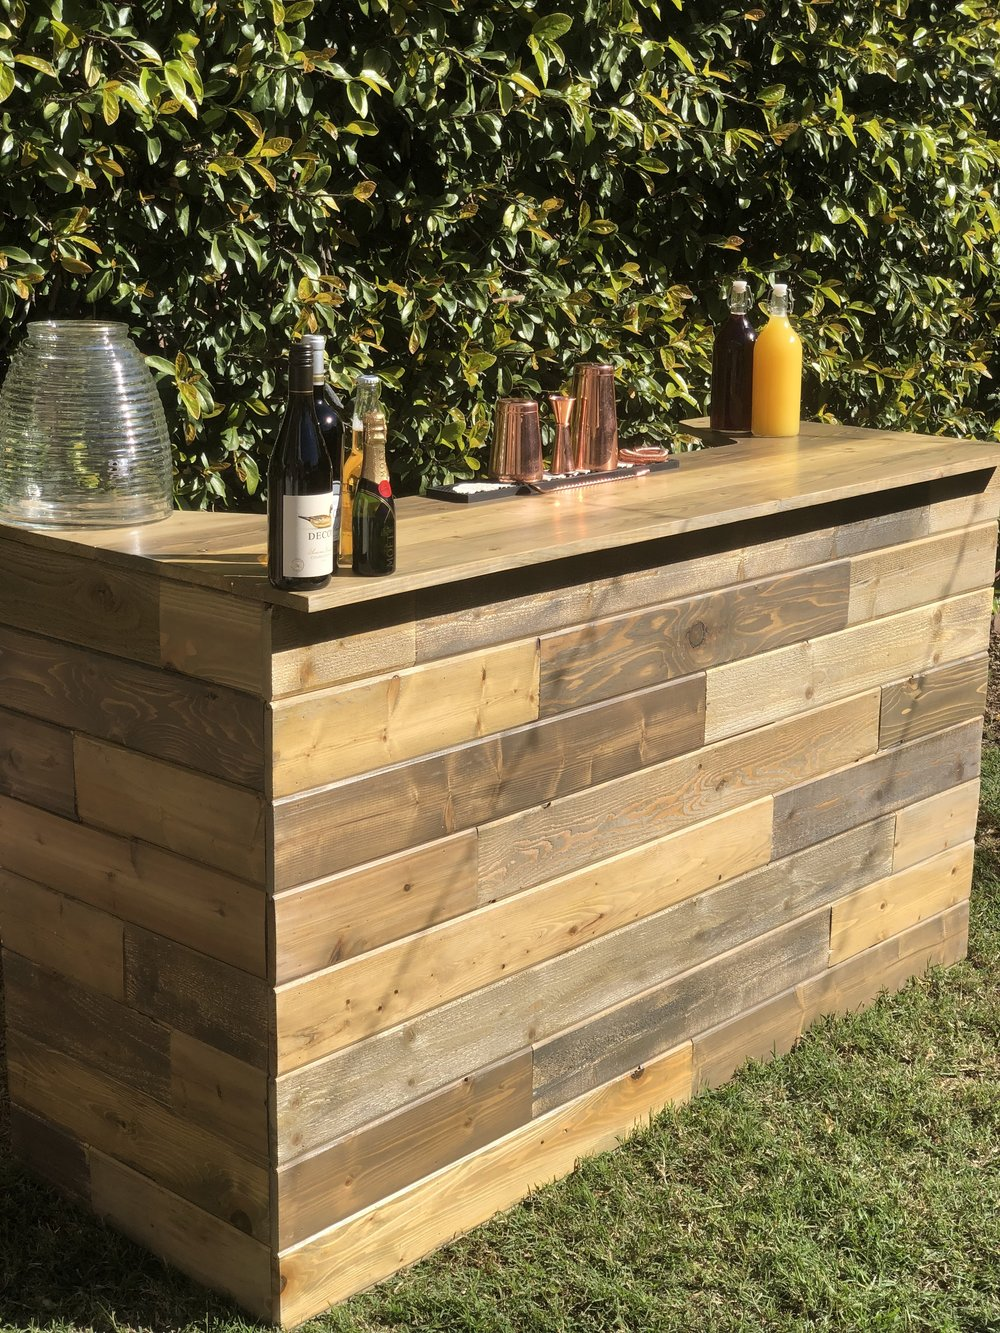 Due to demand we just add this beautiful 6'ft wooden bar! Rent yours now!